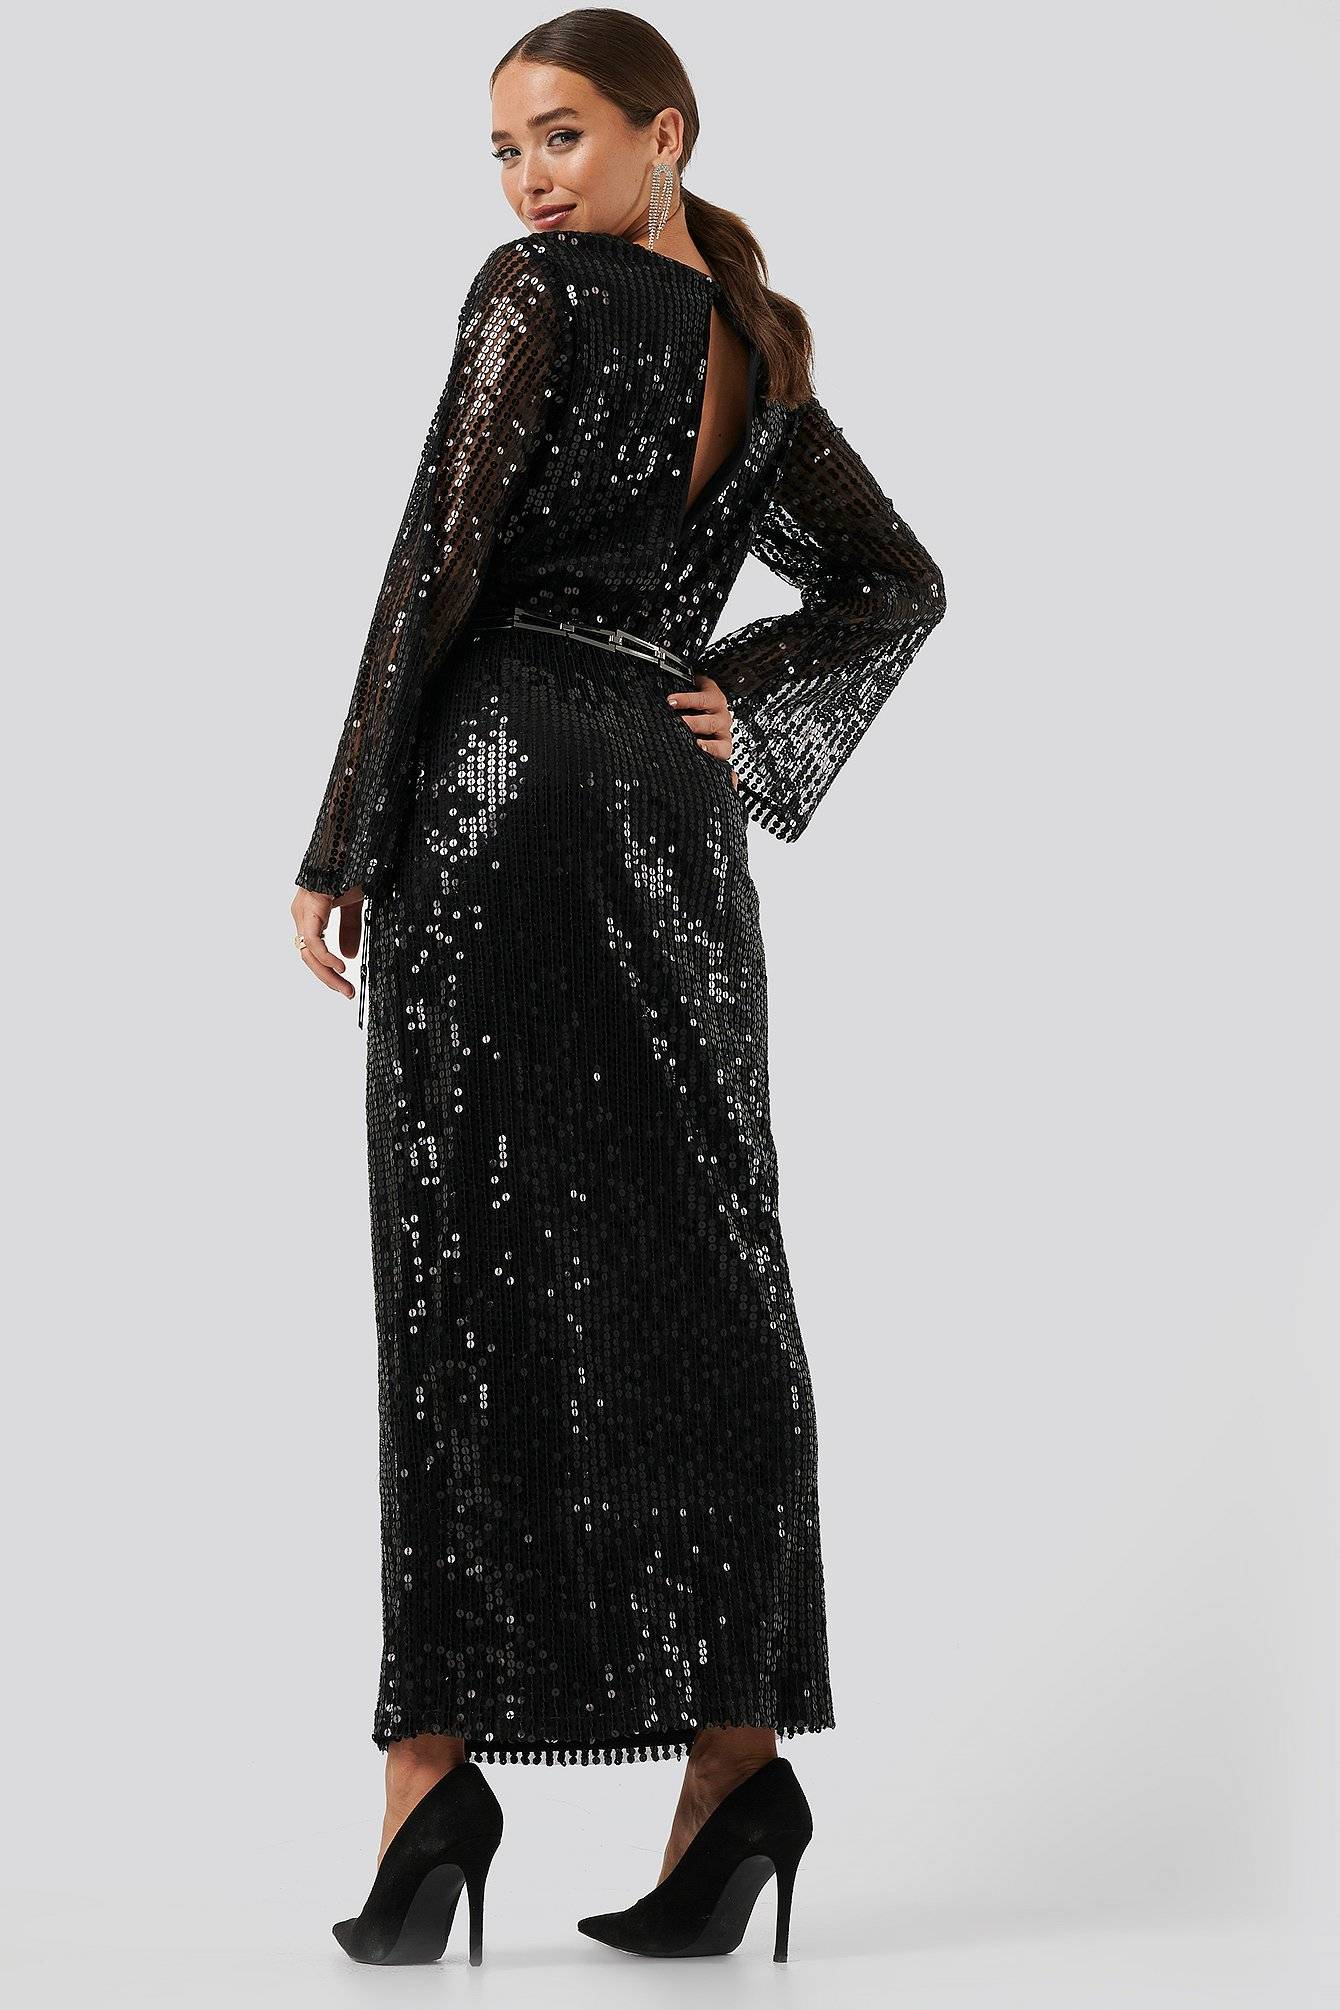 Image of NA-KD Party Trumpet Sleeve Sequin Dress - Black